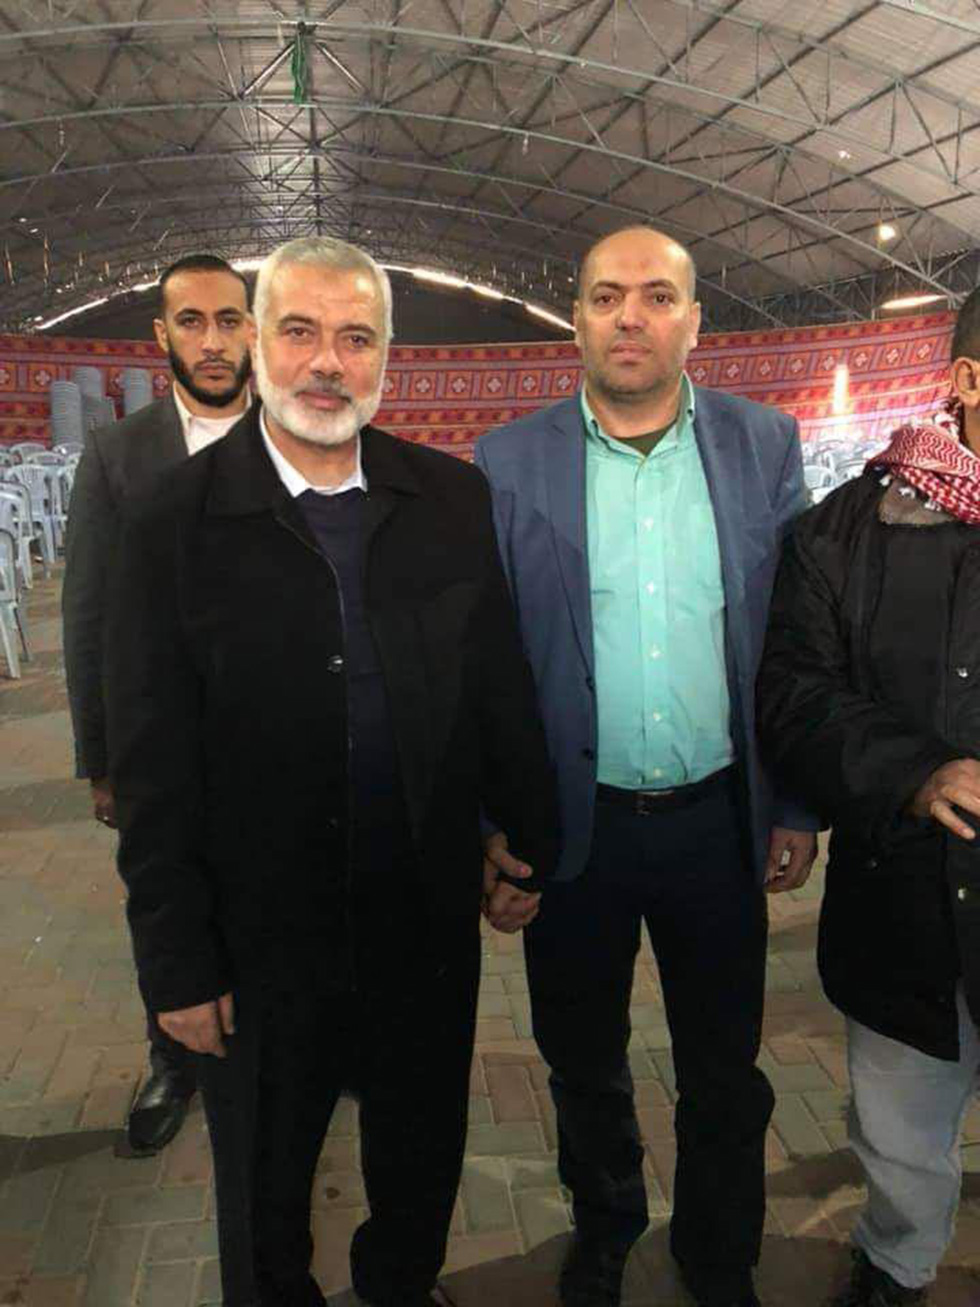 Jassar Barghouti holds hands with Hamas political leader Ismail Haniyeh in an image taken after the Ofra attack